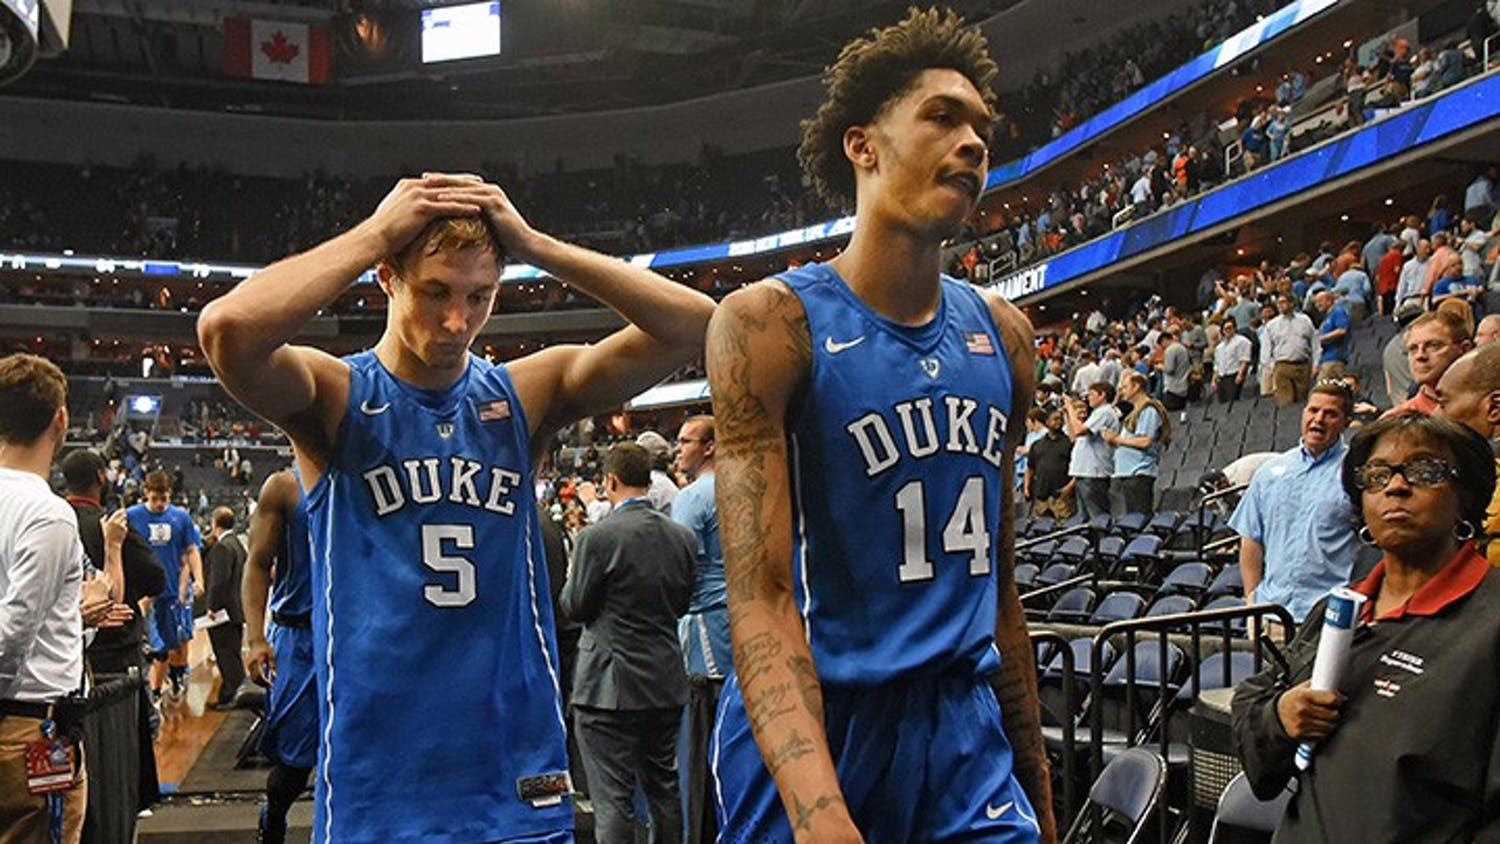 Duke guard Luke Kennard (5) and guard Brandon Ingram (14) leave the floor after losing in overtime to Notre Dame 84-79 at the ACC Tournament at the Verizon Center on March 10, 2016 in Washington, D.C. (Chuck Liddy/Raleigh News & Observer/TNS)